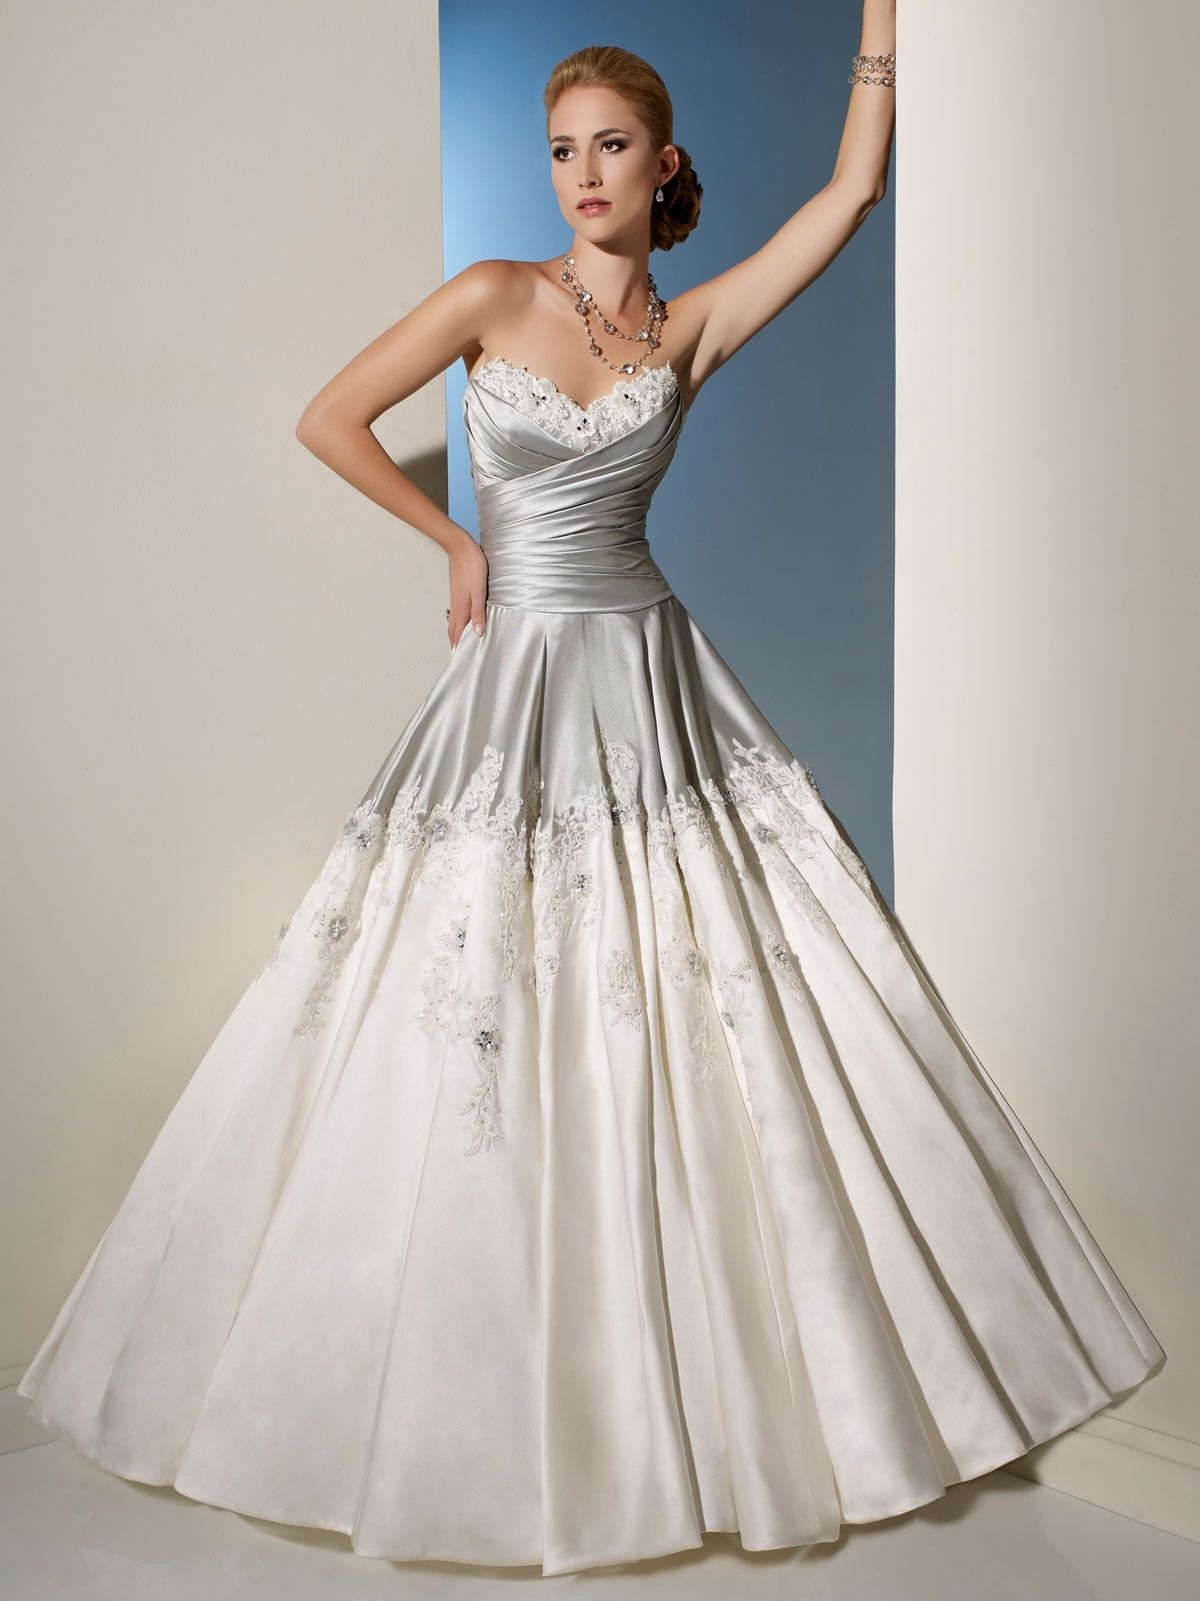 White and silver wedding dresses  Silver Bodice Wedding Dress  Wedding Dress  Pinterest  Bodice